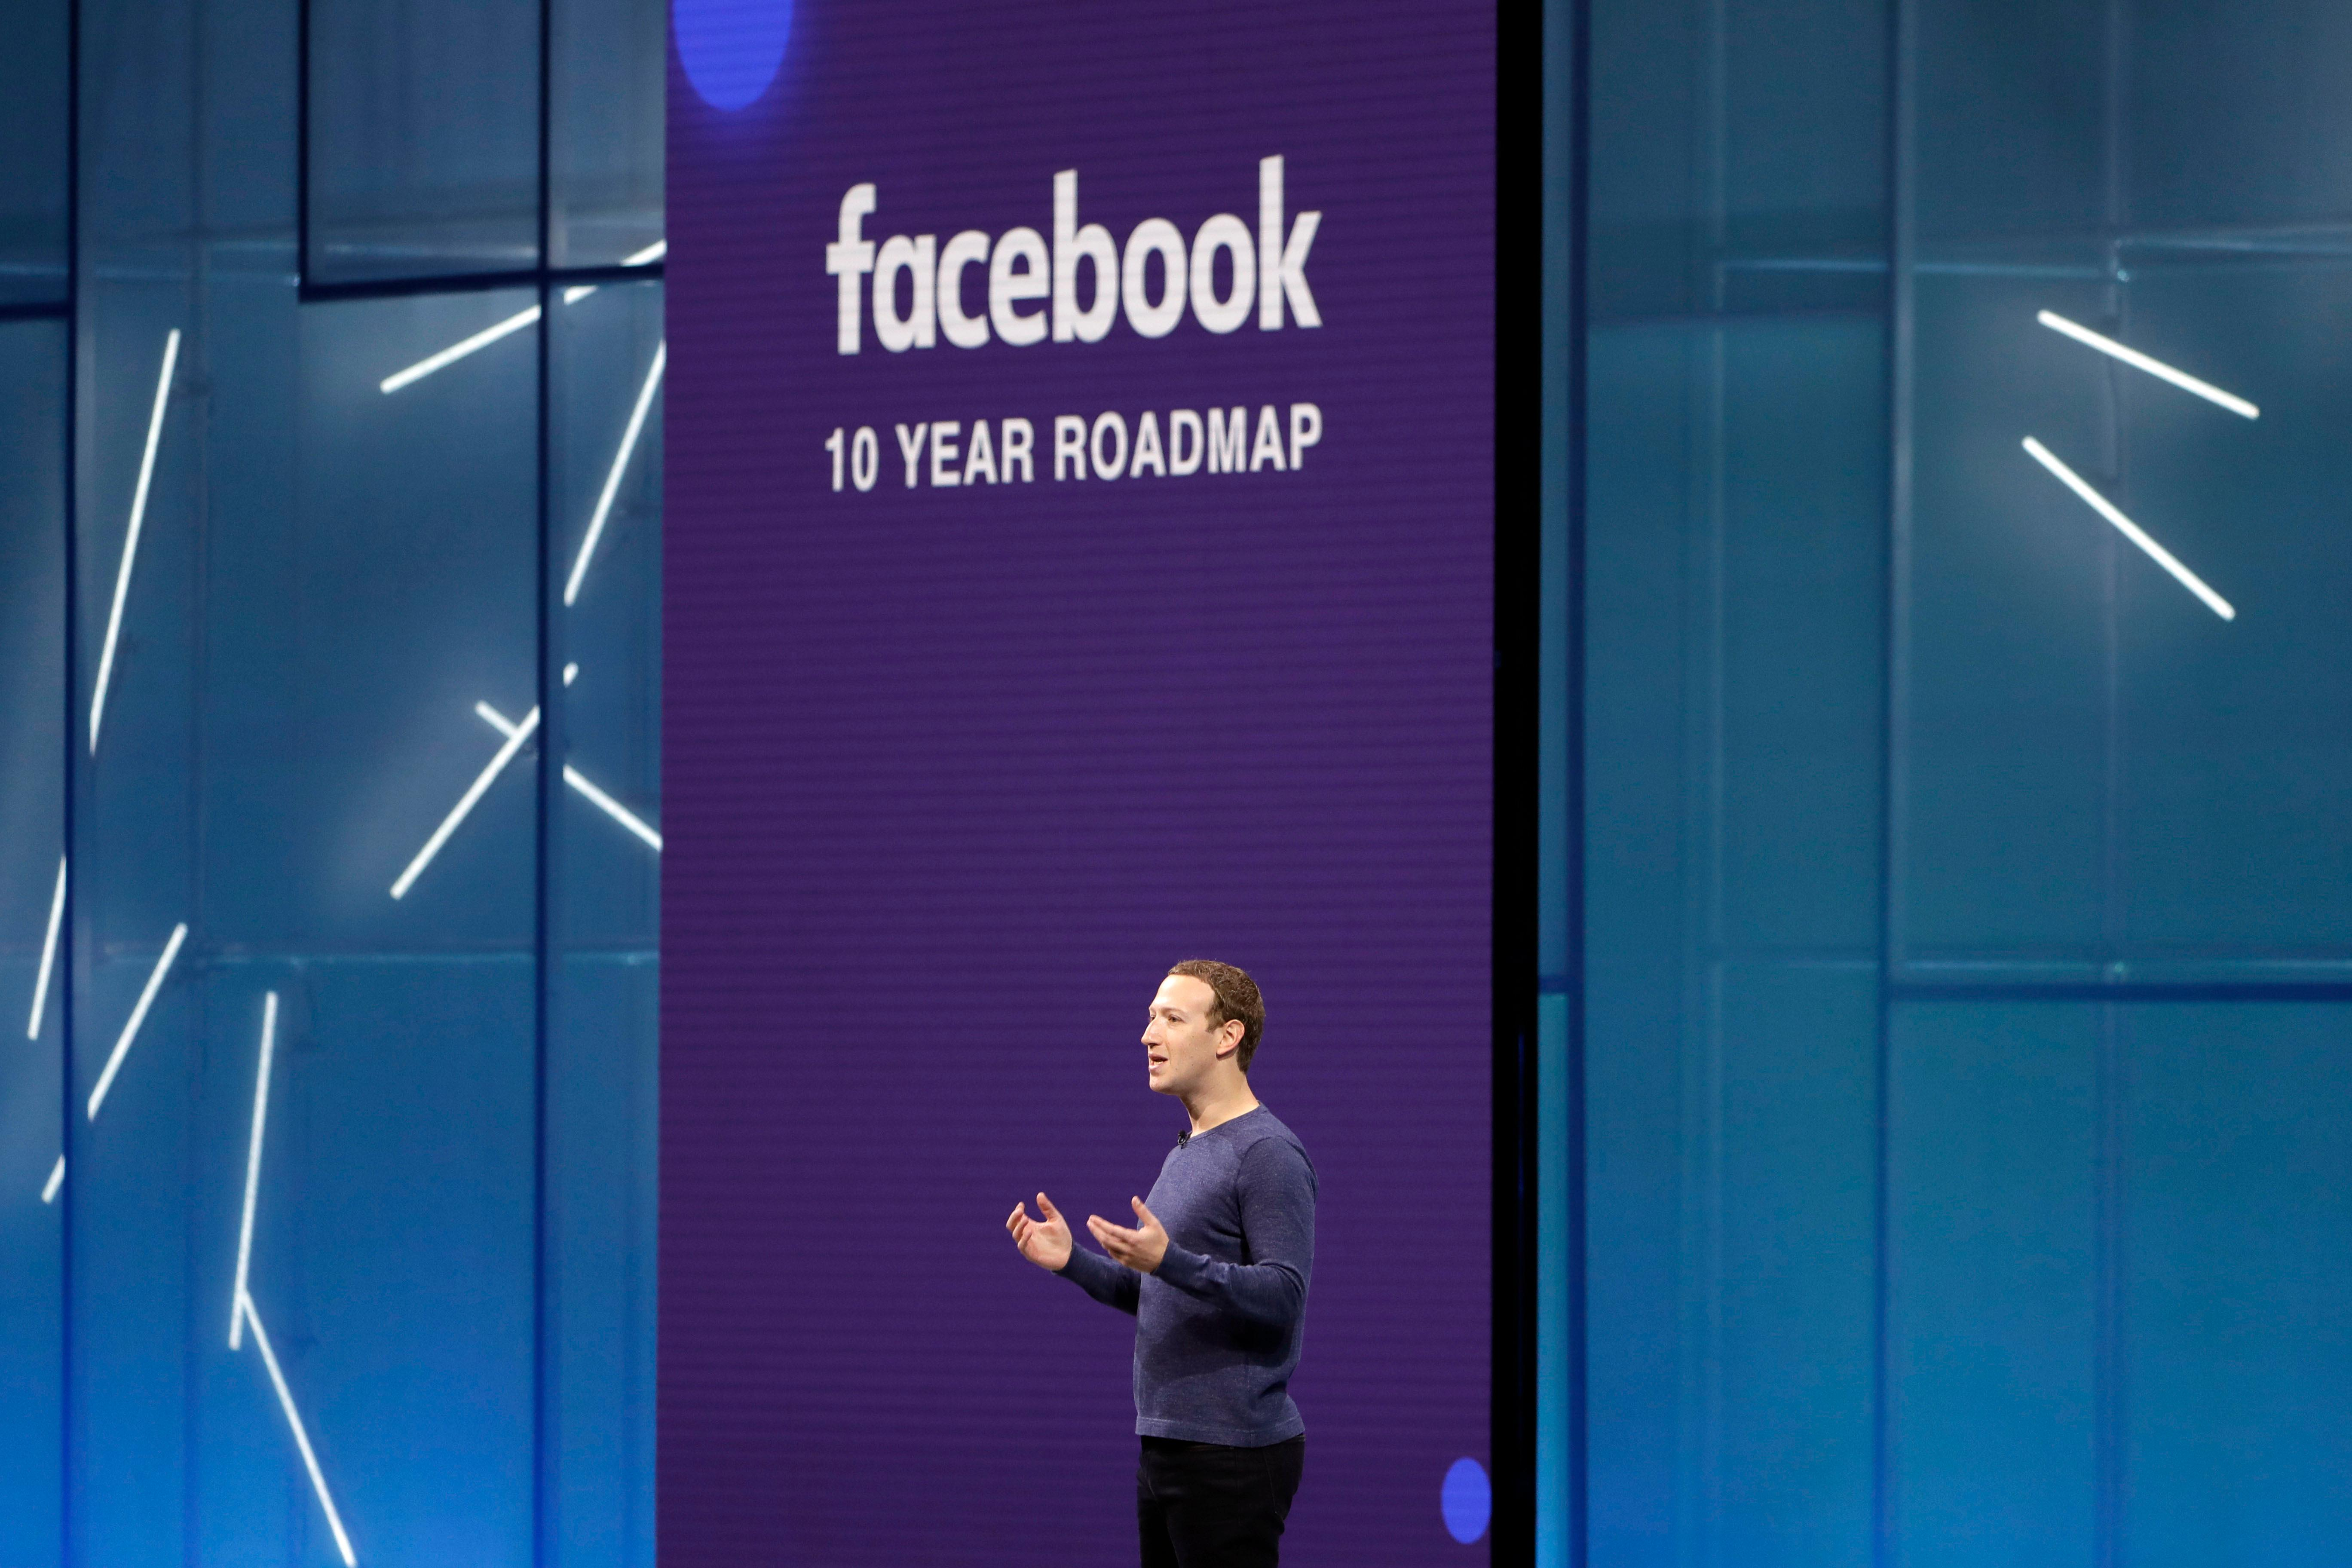 FILE- In this May 1, 2018, file photo, Facebook CEO Mark Zuckerberg makes the keynote speech at F8, Facebook's developer conference, in San Jose, Calif. Facebook is suspending about 200 apps that it believes may have misused data. The social media giant said in a blog post Monday, May 14, that the suspensions resulted from its investigation into all apps that had access to large amounts of information before Facebook changed its platform policies in 2014. (AP Photo/Marcio Jose Sanchez, File)